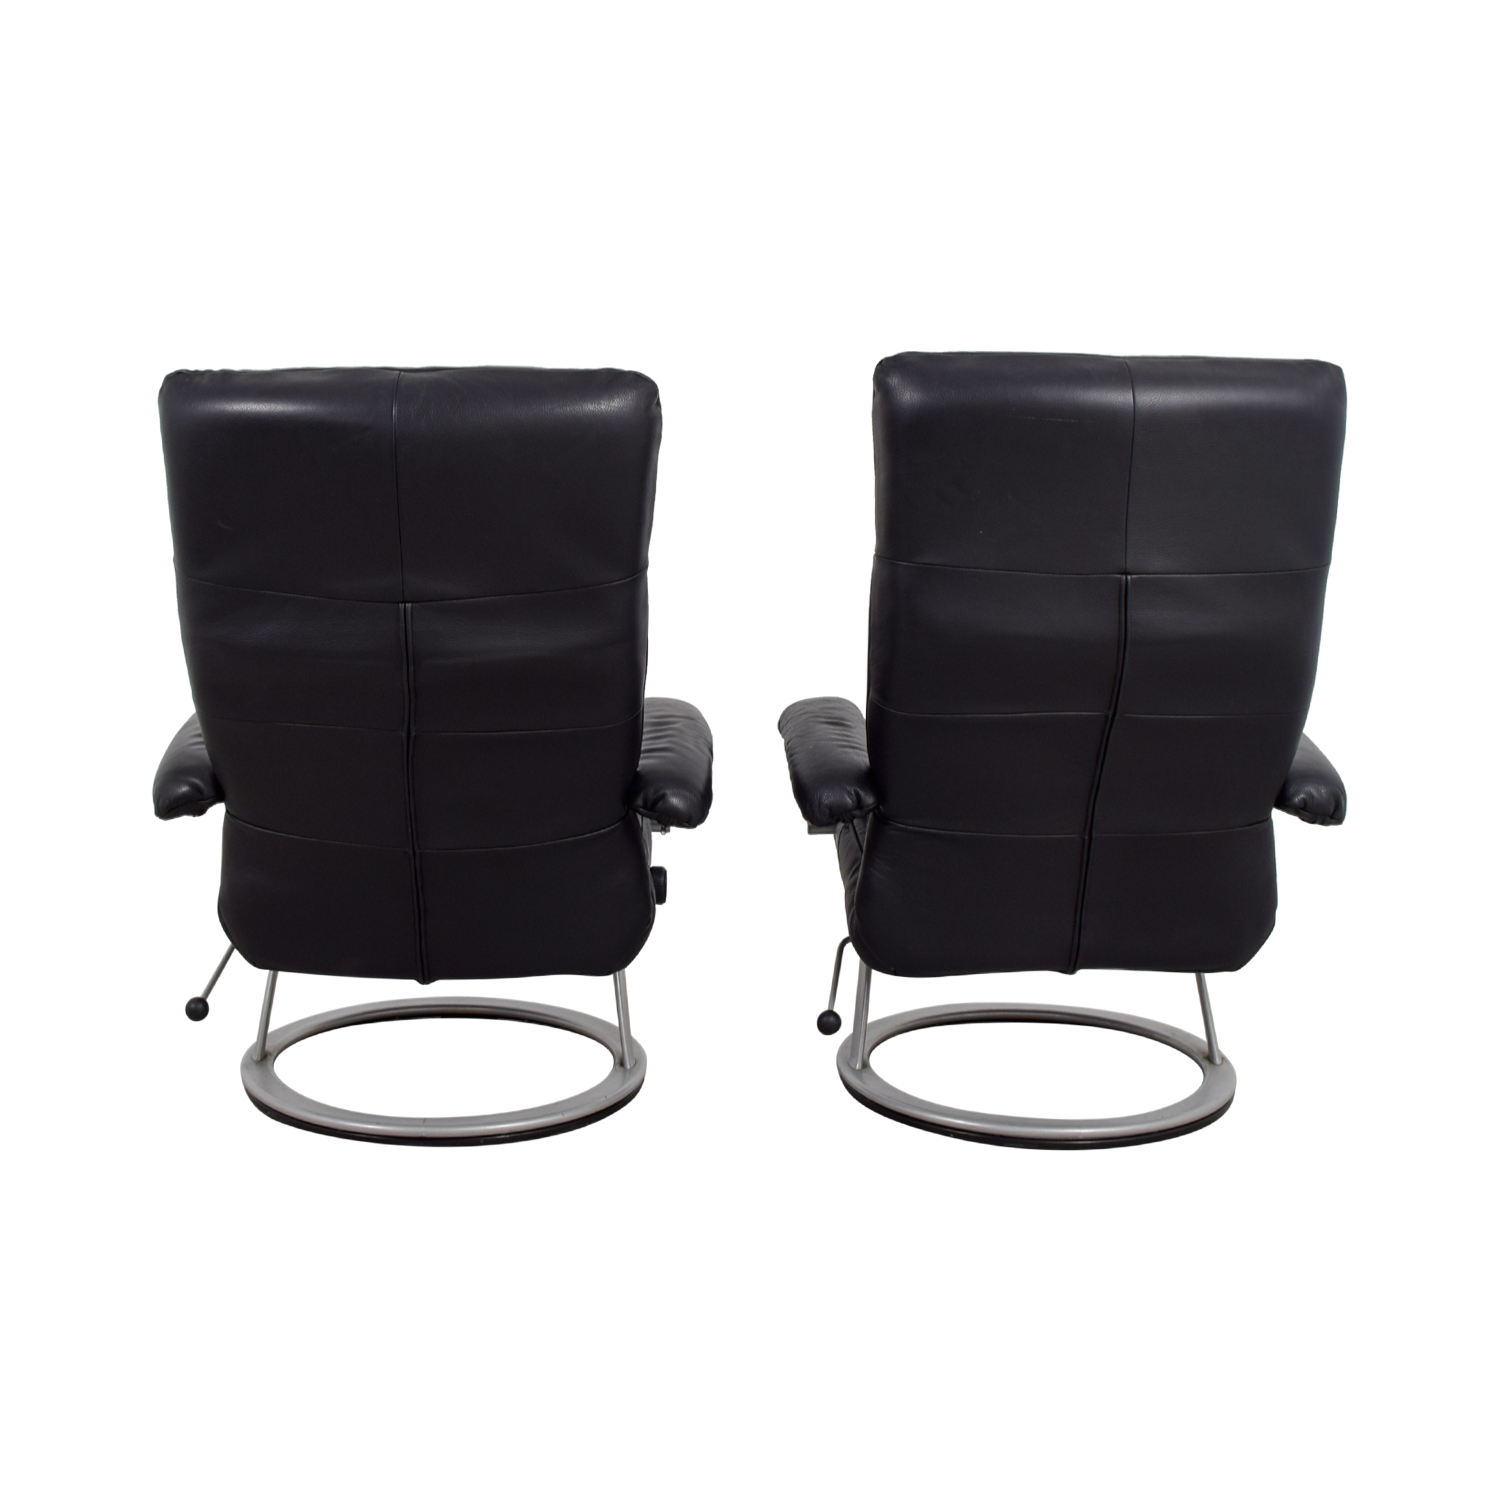 buy Jenson Lewis Black Leather Recliners Jenson Lewis Recliners